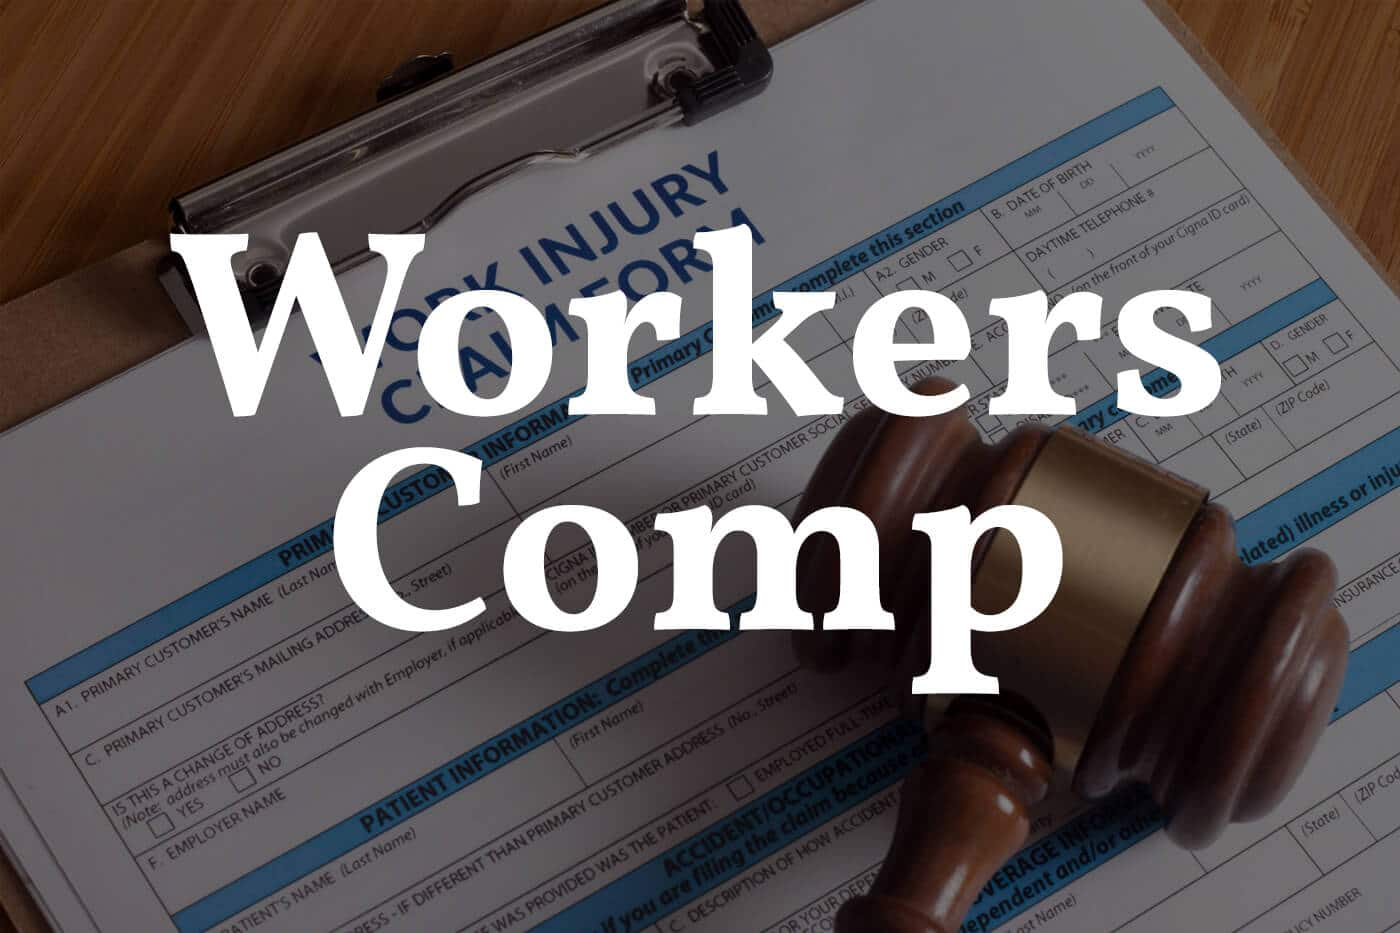 Workers Comp Law Las Vegas Eric Blank